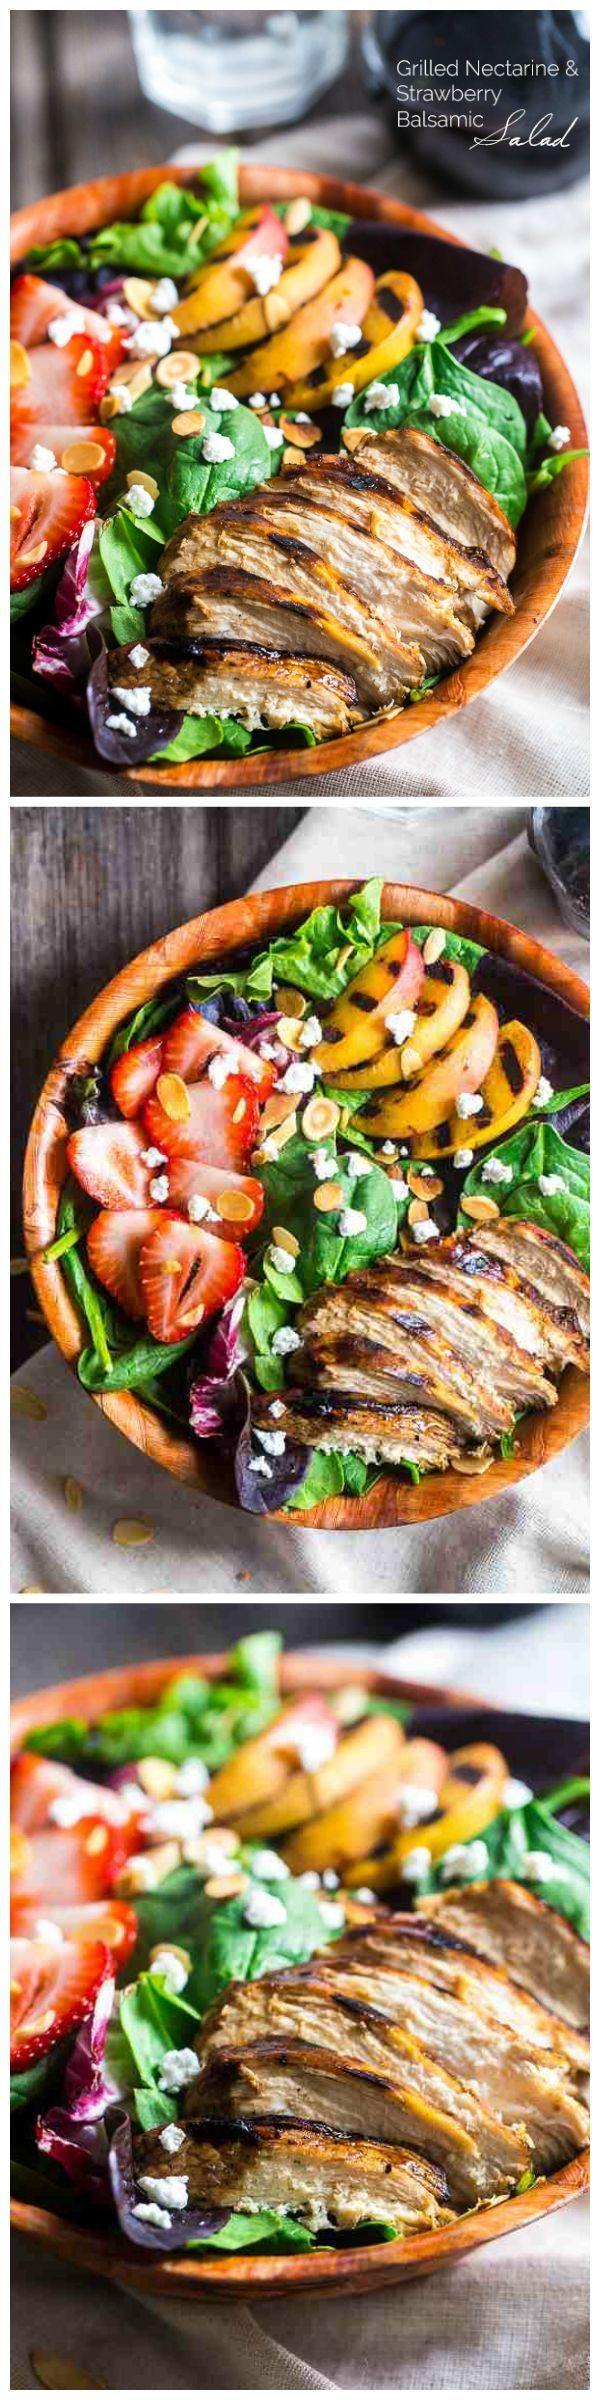 jewelry companies list Strawberry Balsamic Chicken Salad with Grilled Nectarines Fast fresh gluten free and healthy this salad is summer in a bowl